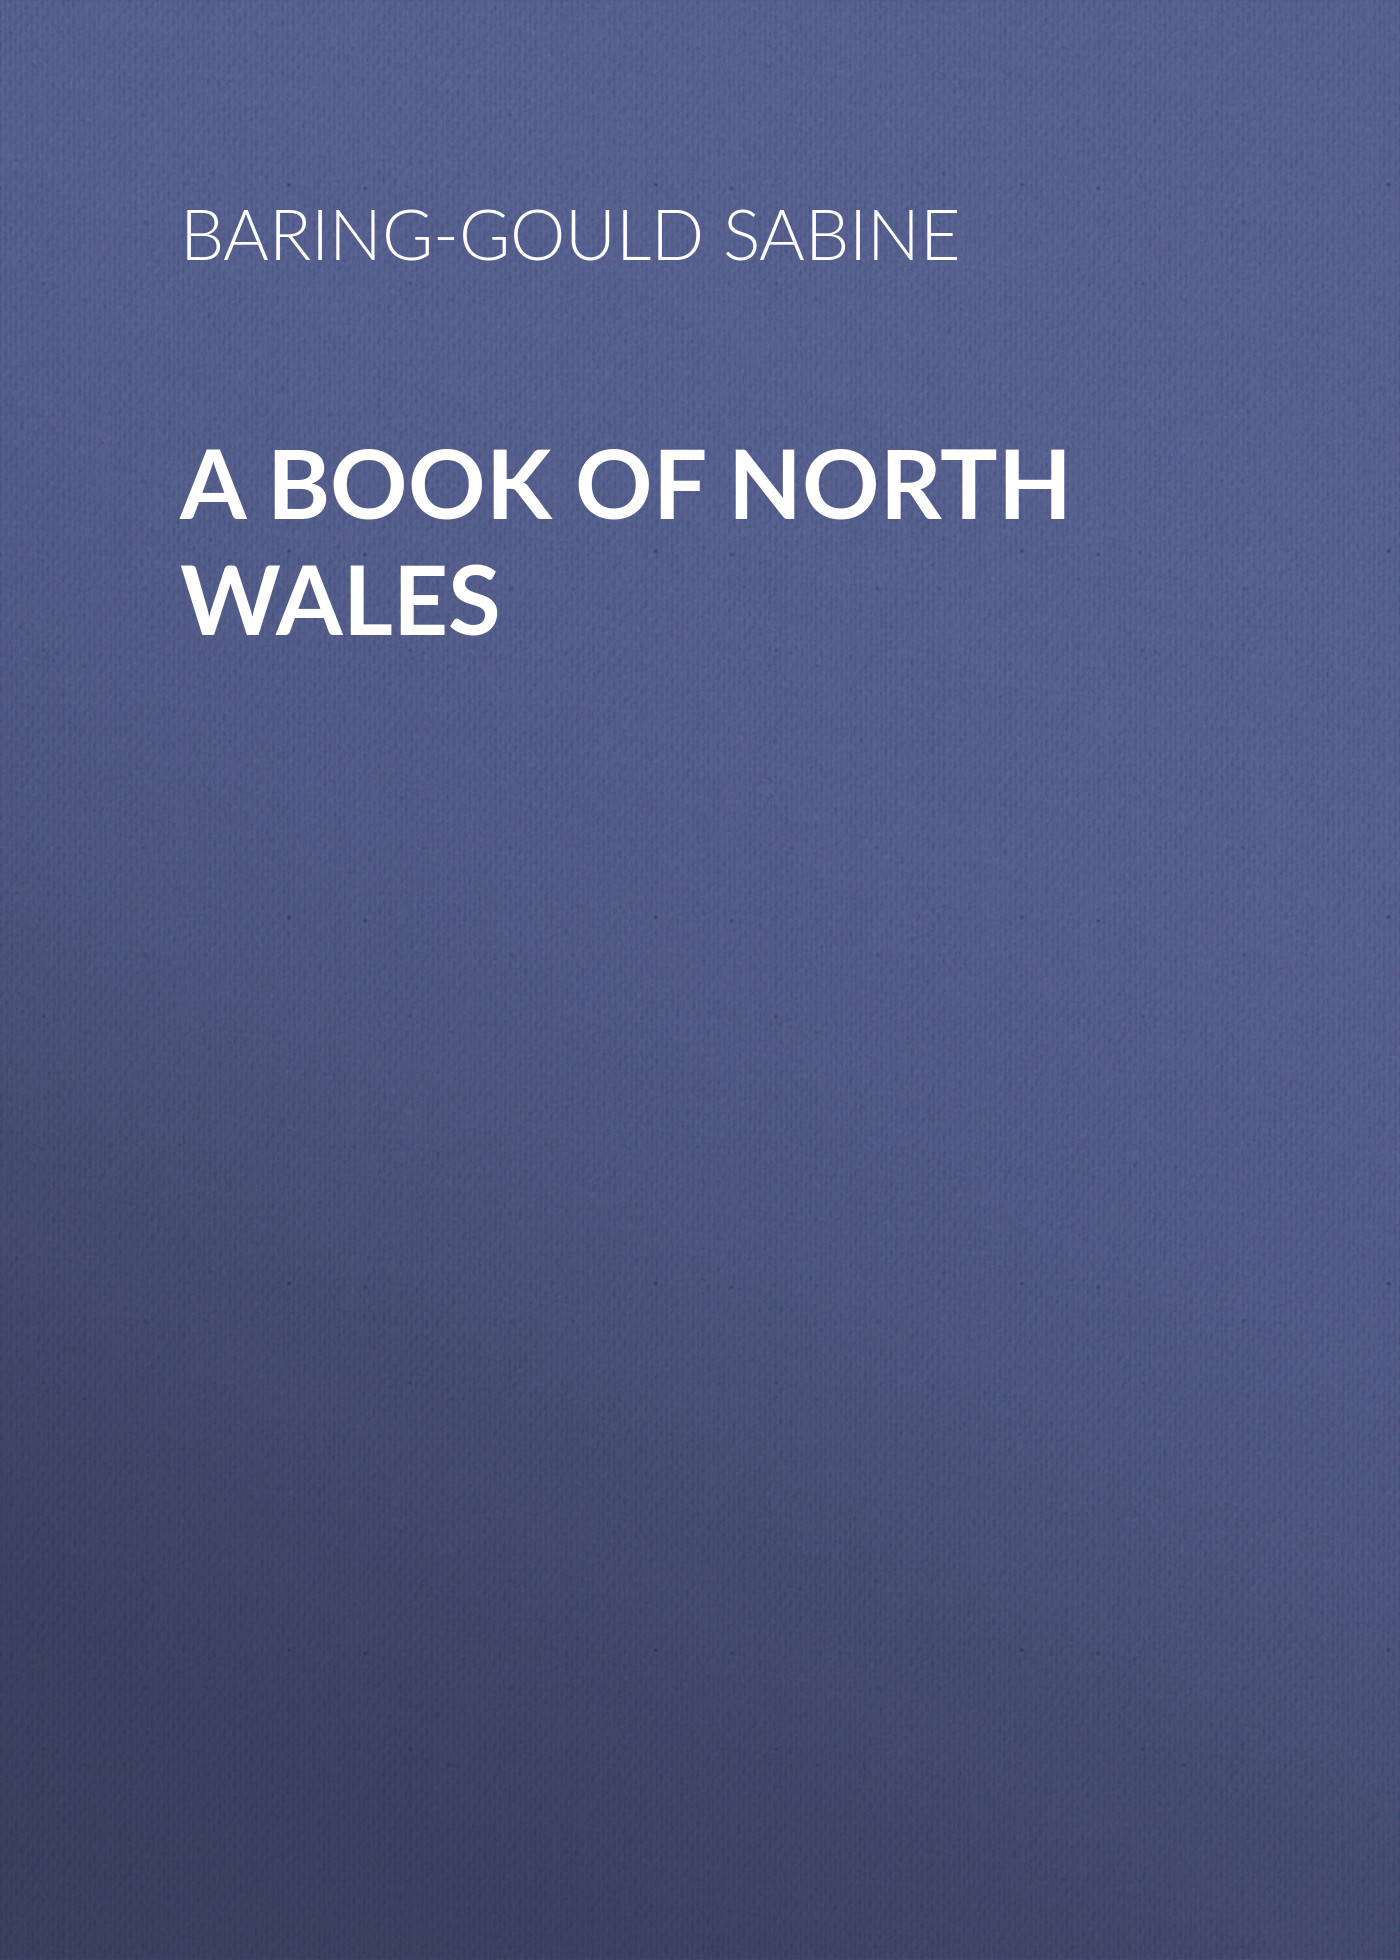 Baring-Gould Sabine A Book of North Wales baring gould sabine a book of north wales